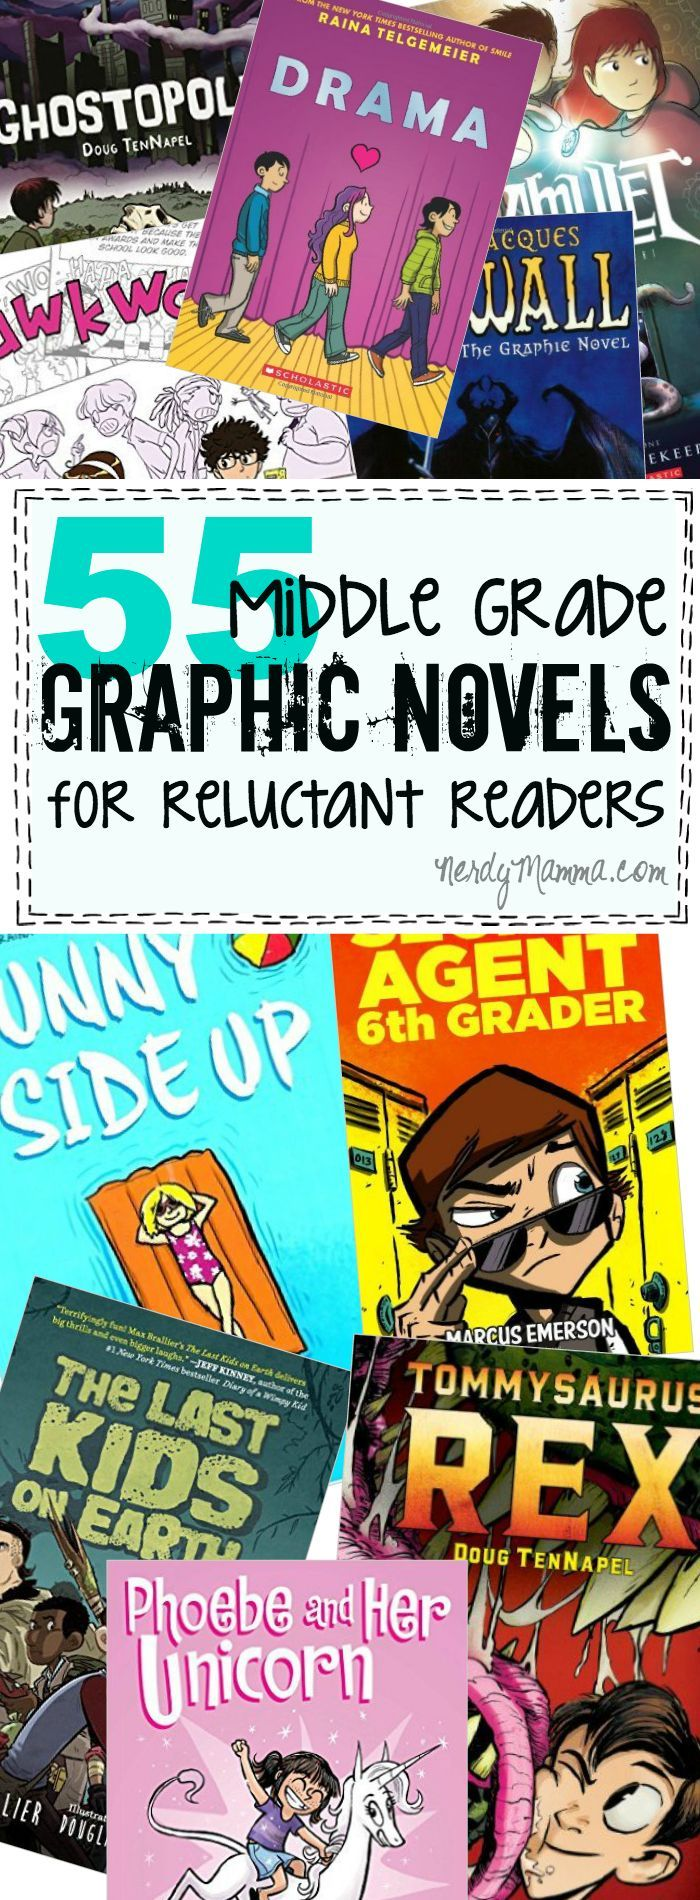 Oooh! These Middle Grade Graphic Novels are just what I need to get my Middle Schooler reading again...he's going to love these!